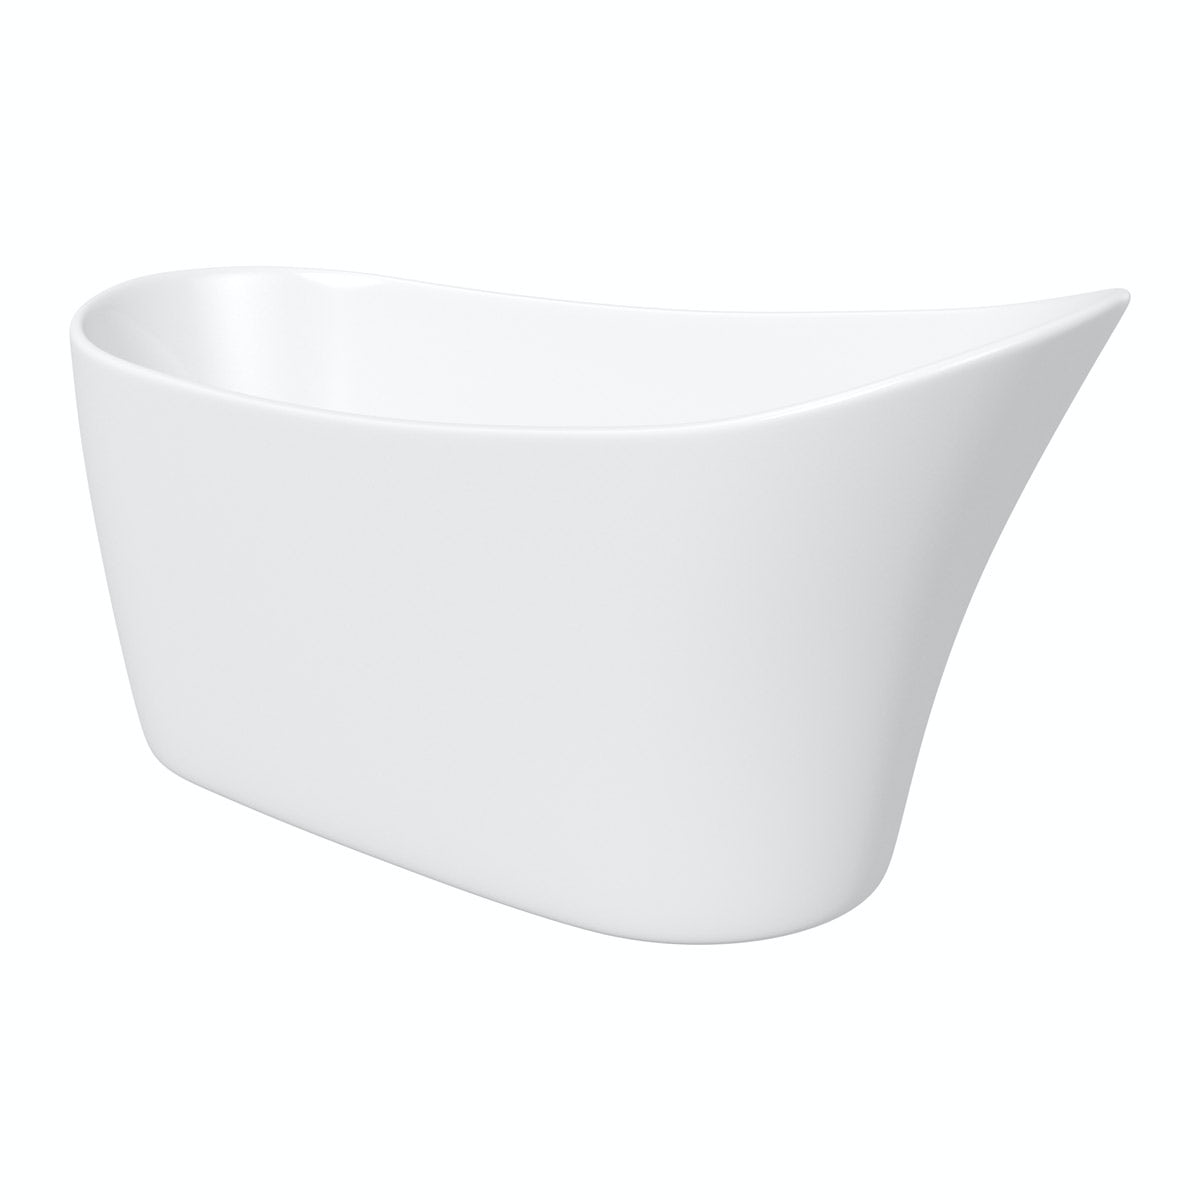 Mode Hardy freestanding bath 1600 x 750